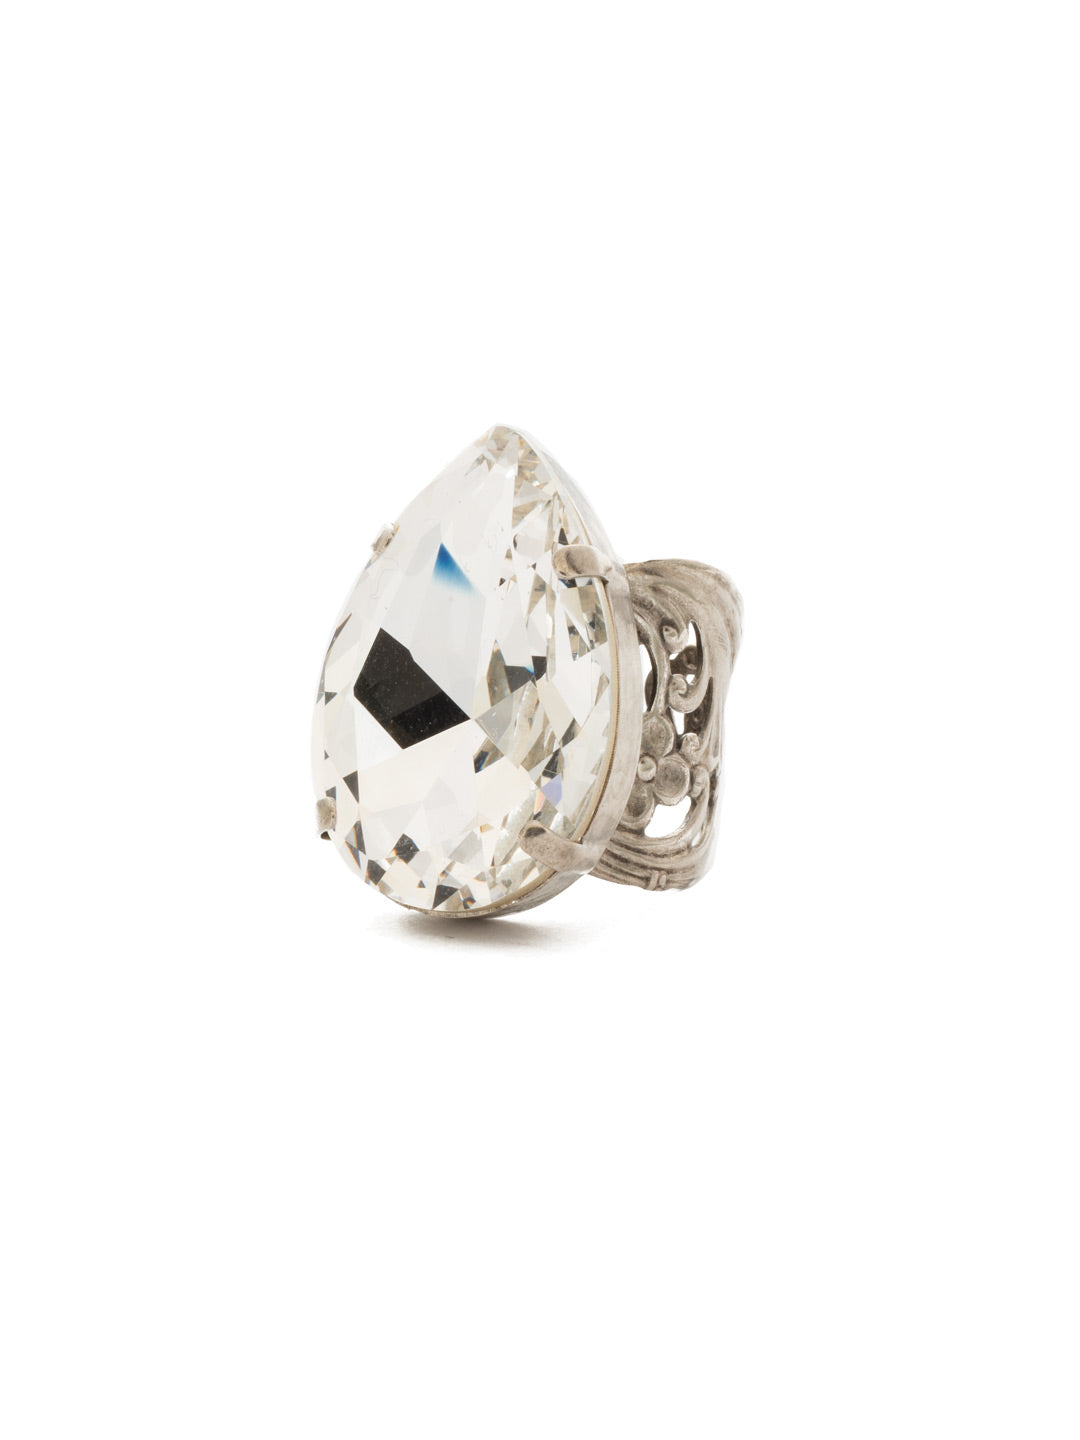 Teardrop Cocktail Ring - RCM25ASCRY